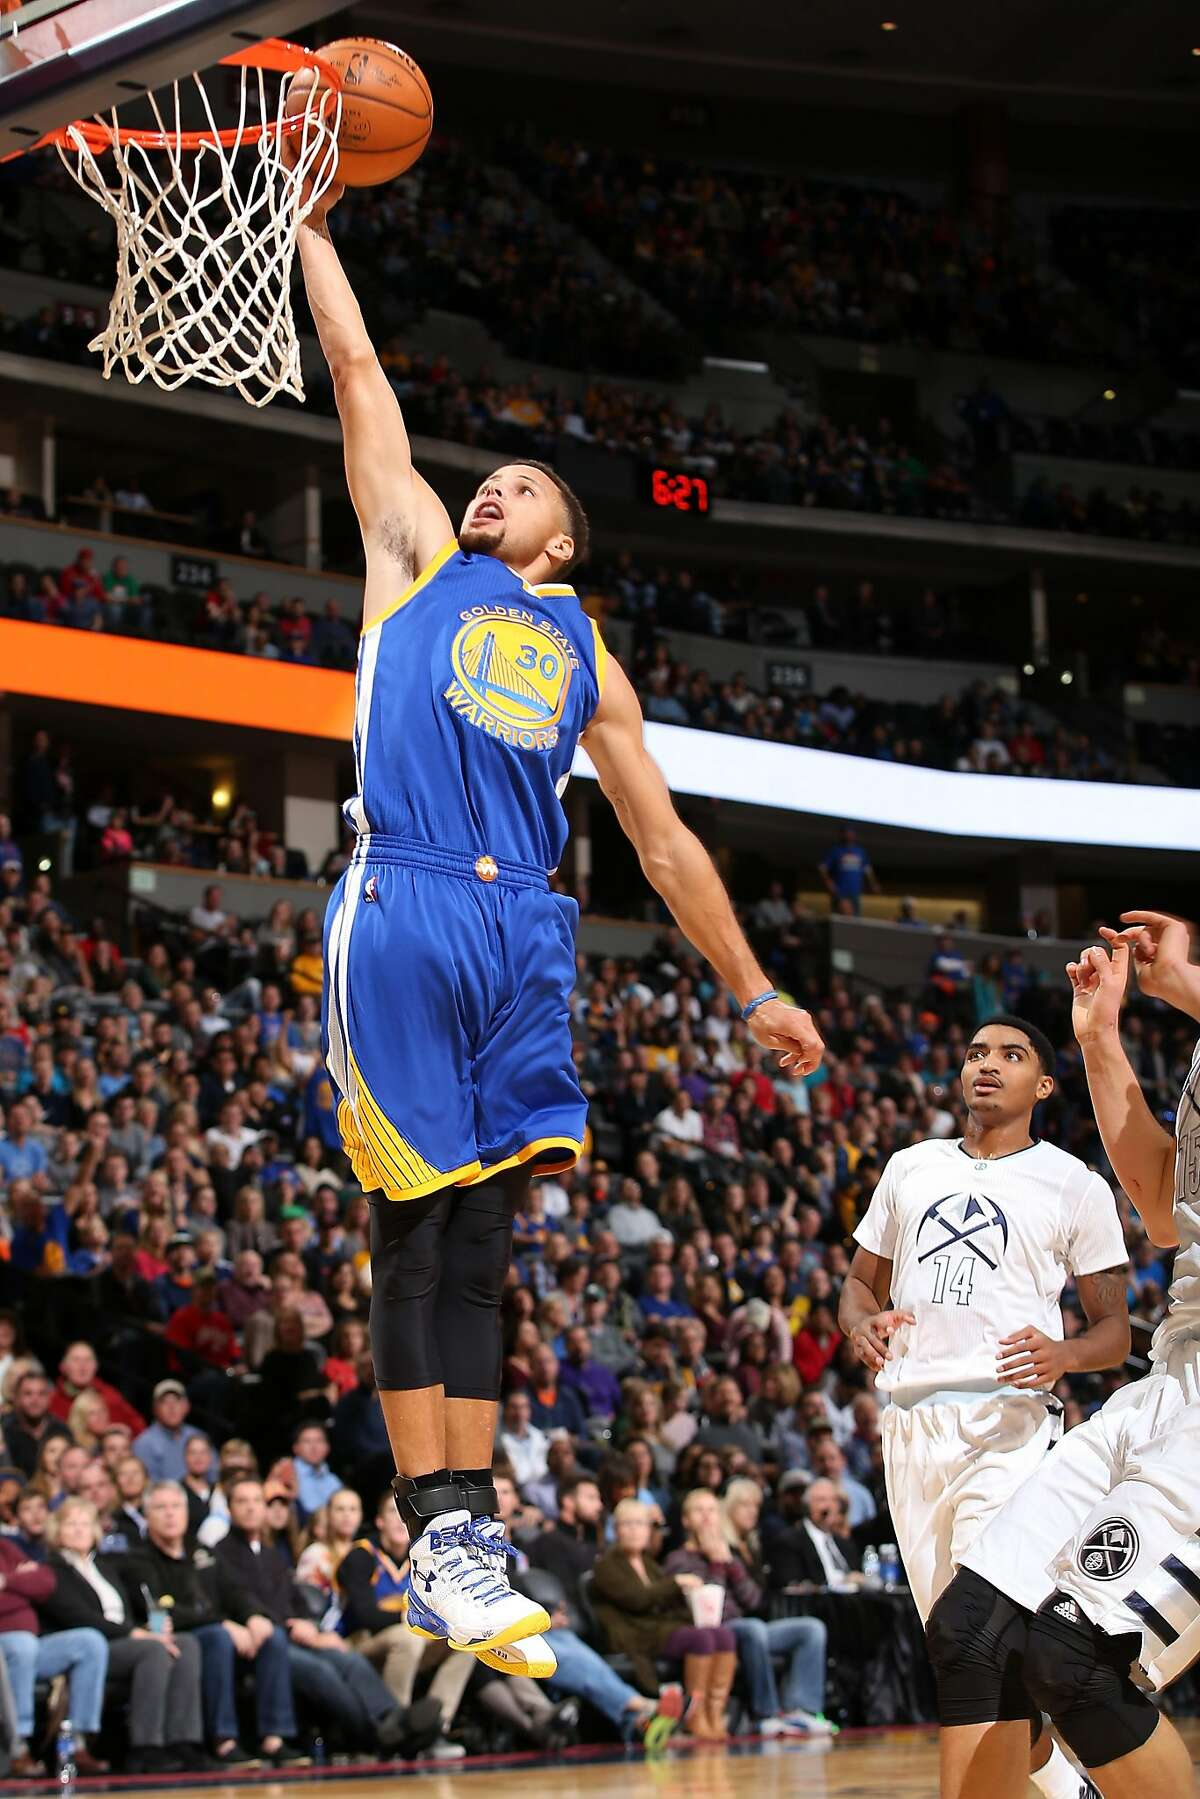 DENVER, CO - NOVEMBER 22: Stephen Curry #30 of the Golden State Warriors lays up a shot against the Denver Nuggets at Pepsi Center on November 22, 2015 in Denver, Colorado. NOTE TO USER: User expressly acknowledges and agrees that, by downloading and or using this photograph, User is consenting to the terms and conditions of the Getty Images License Agreement. (Photo by Doug Pensinger/Getty Images)